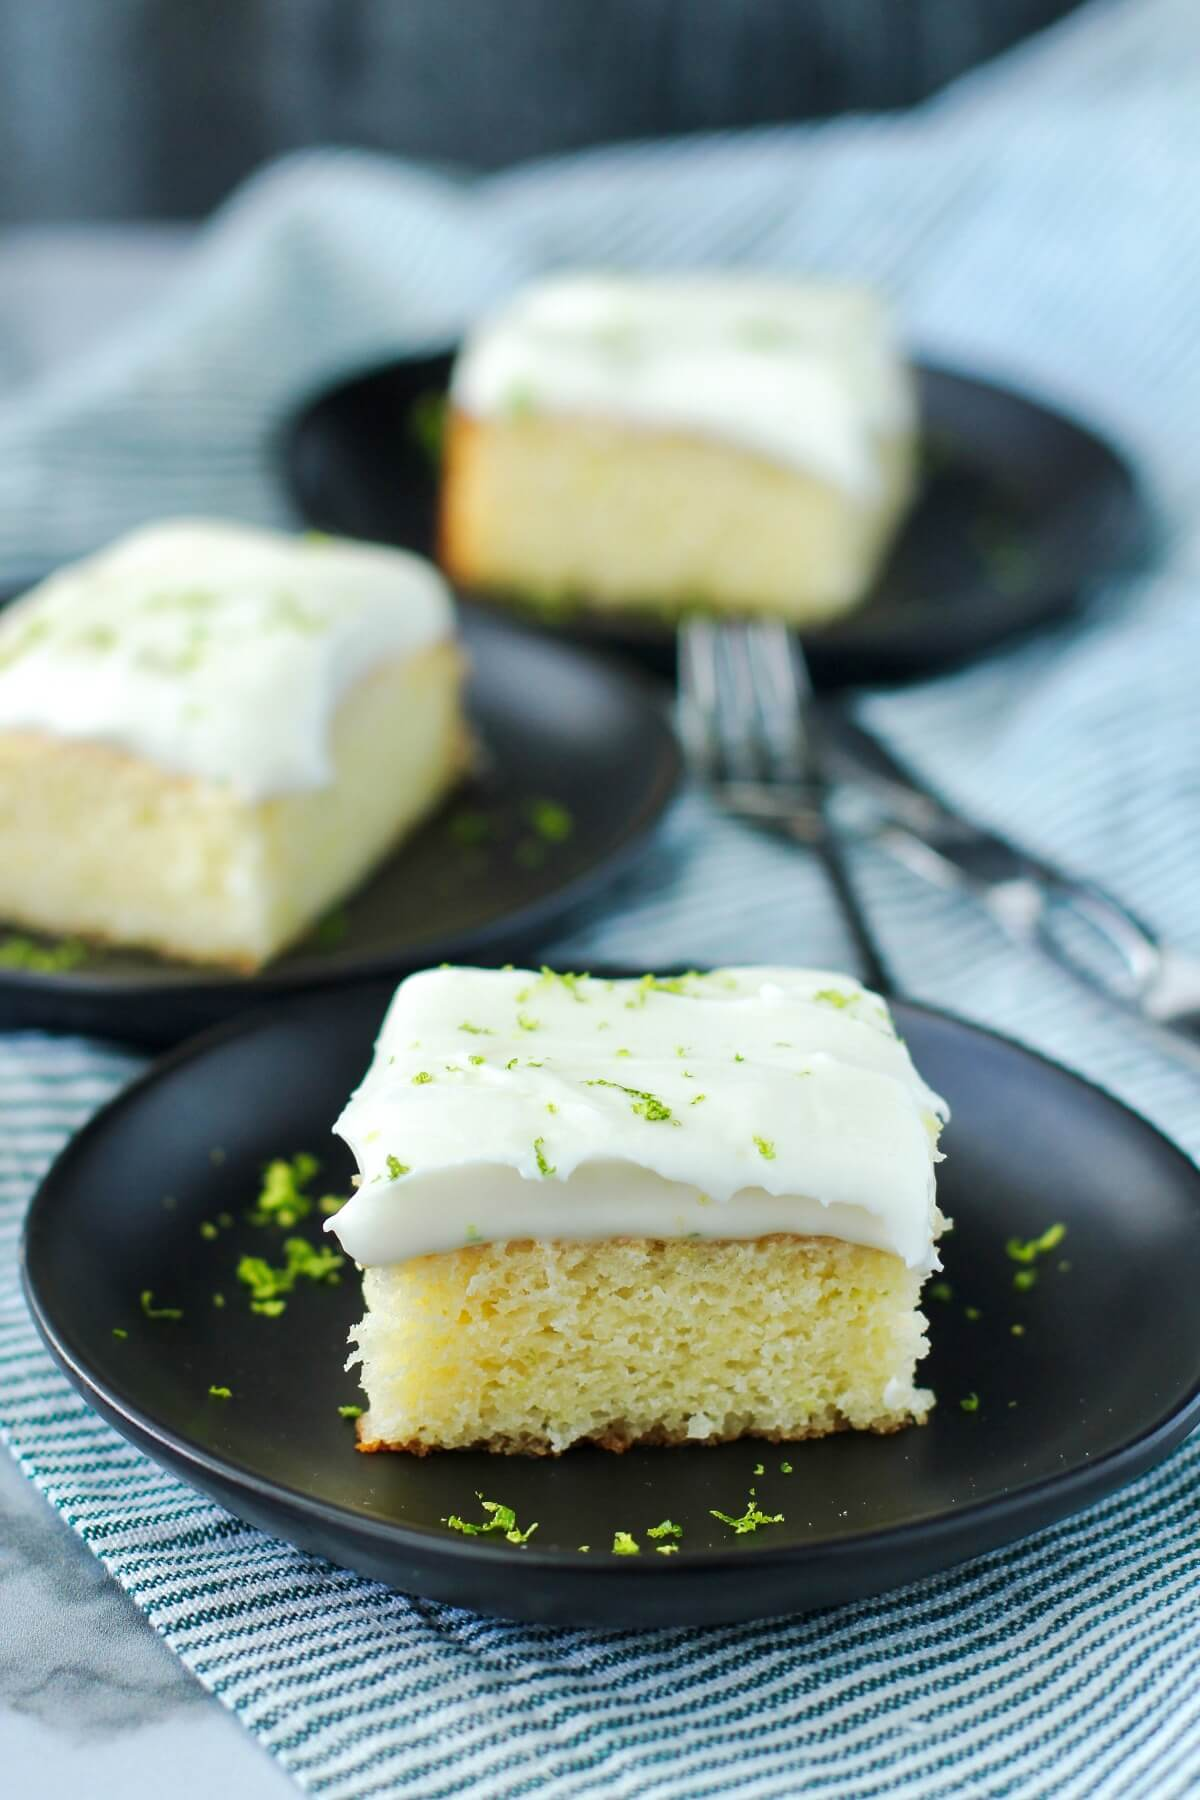 Lime cake slices